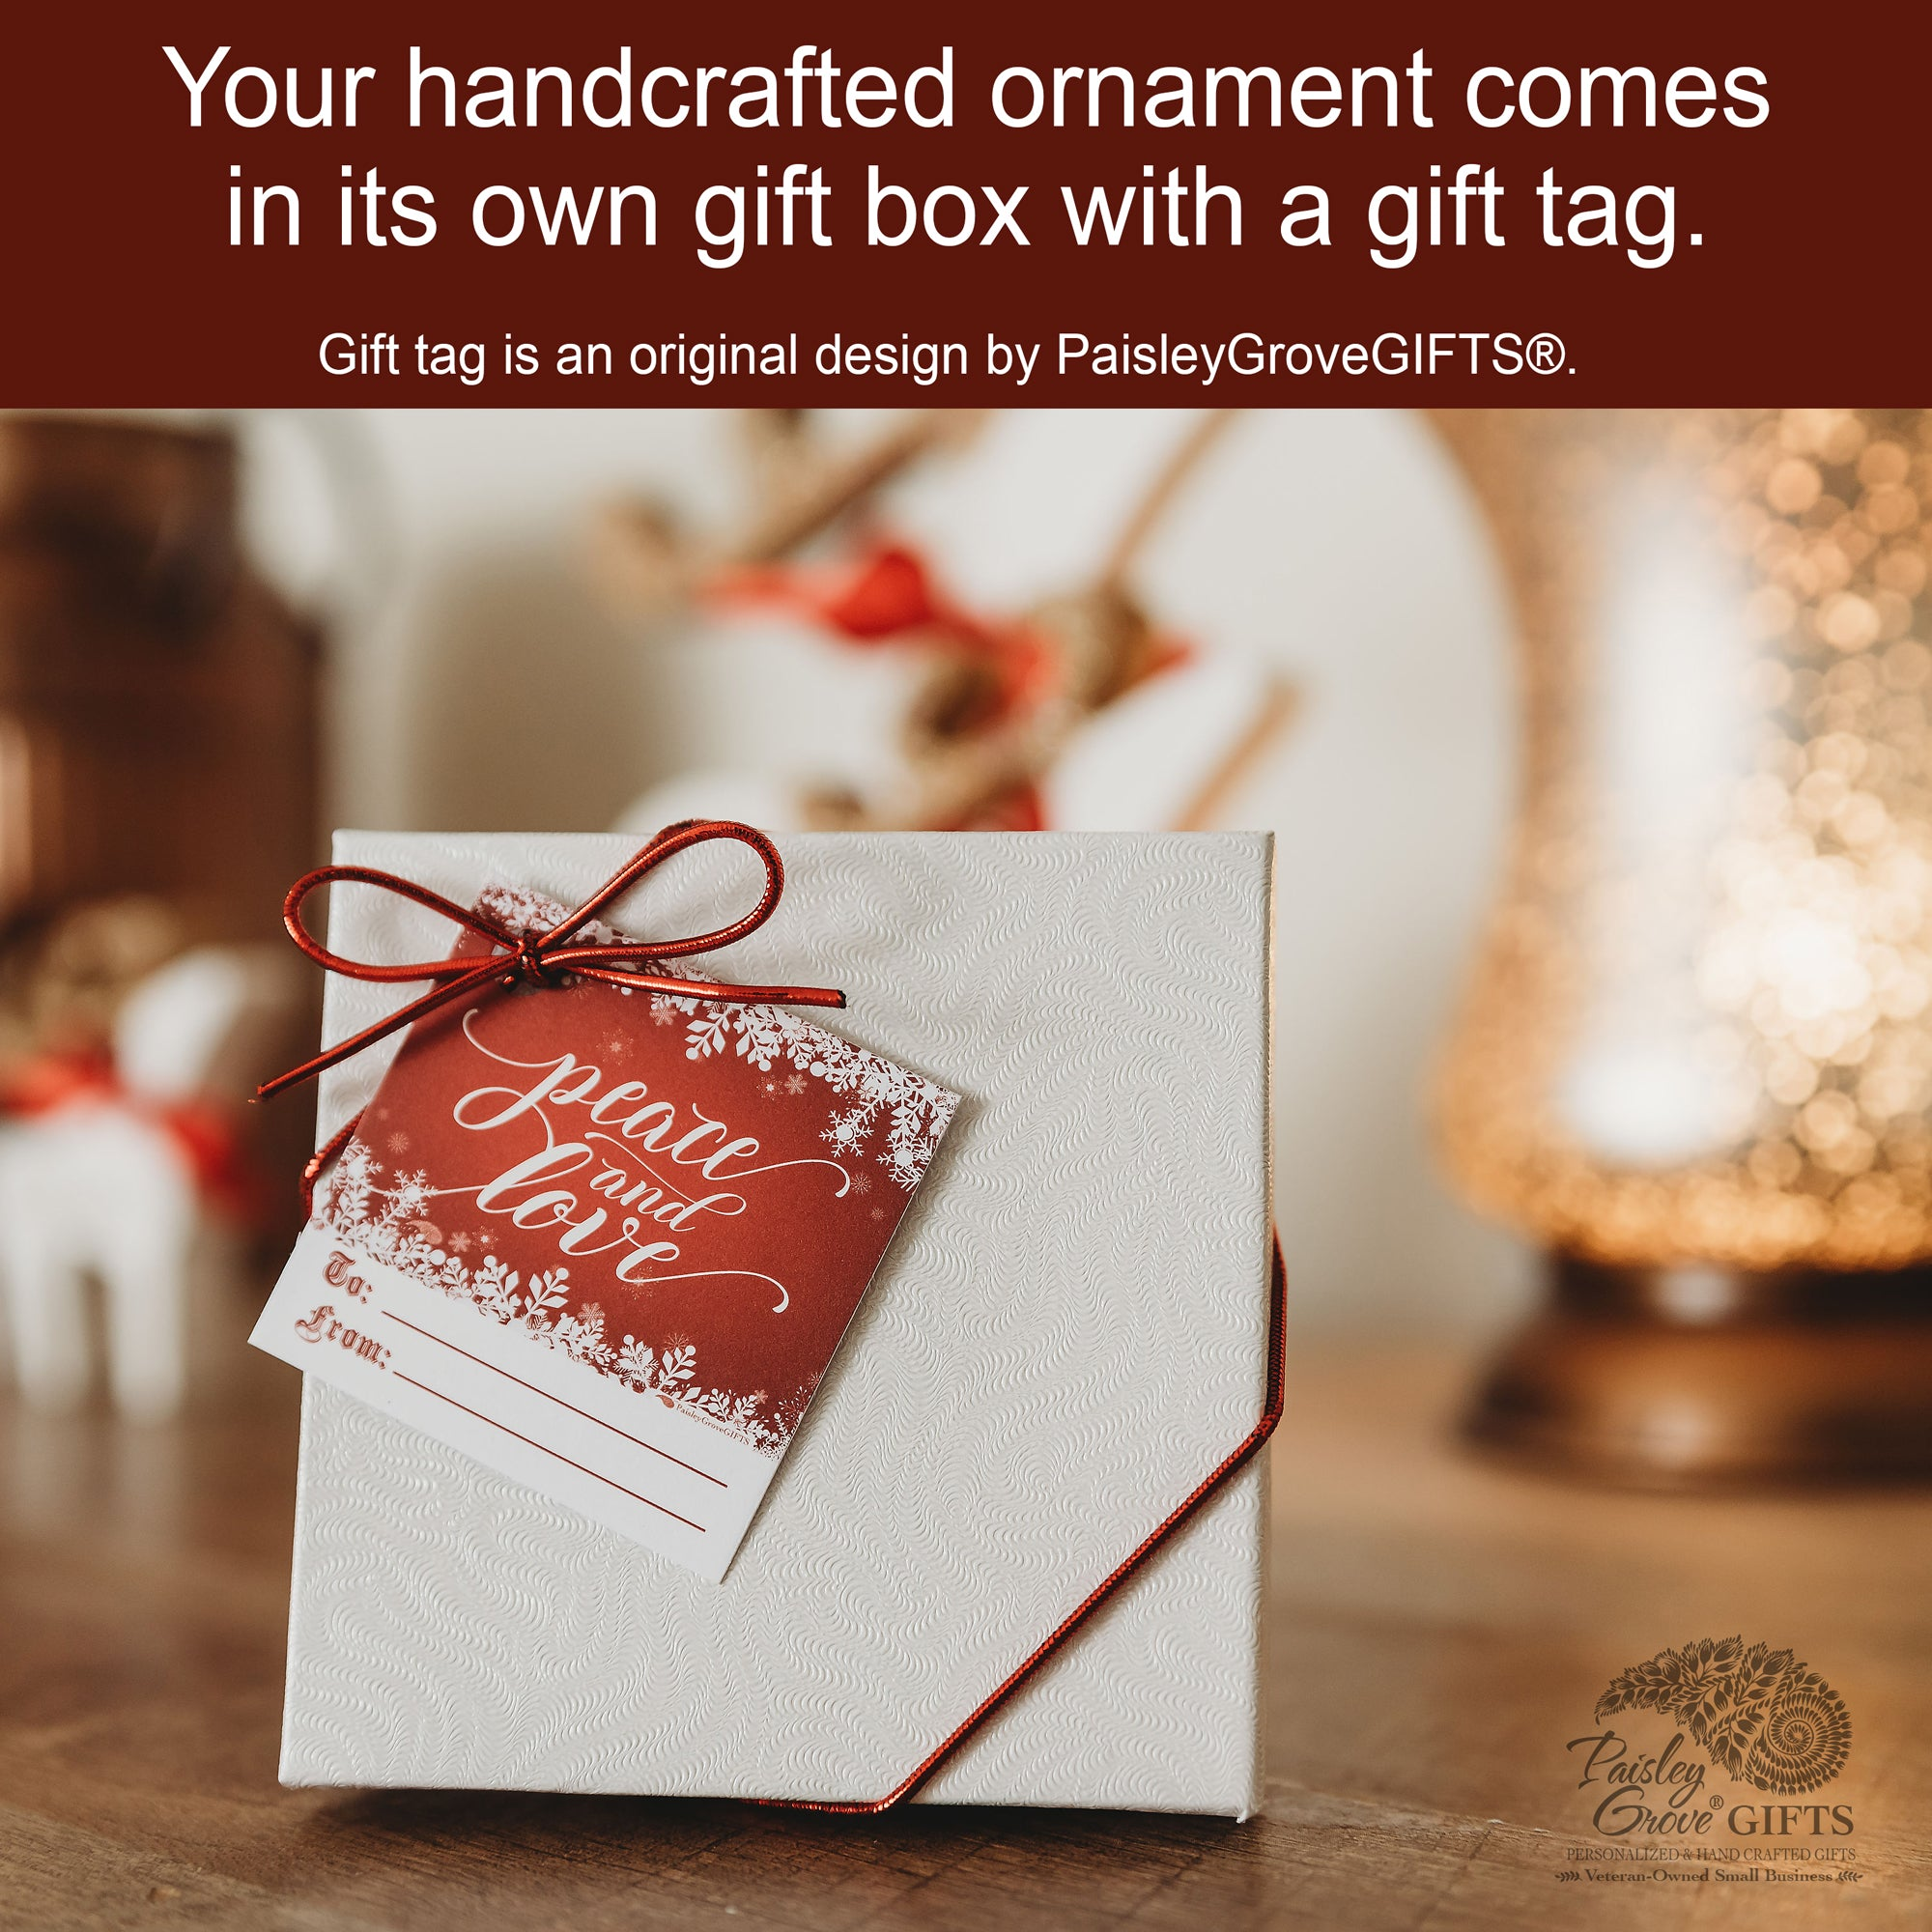 CopyrightPaisleyGroveGIFTS S517b Monogrammed Christmas Ornament Ugly Christmas Sweater comes in gift box